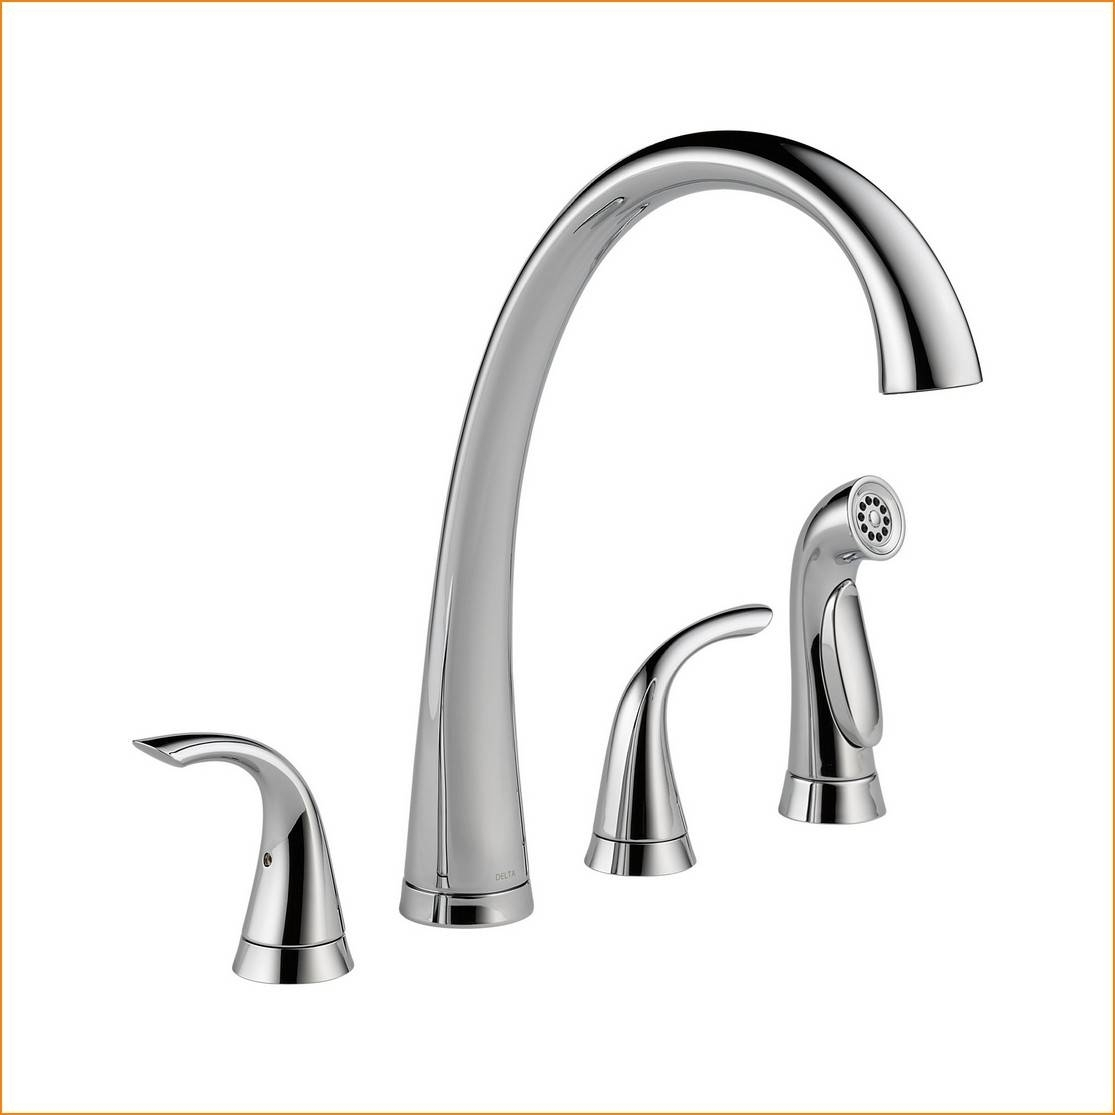 Ideas, grohe talia kitchen faucet grohe talia kitchen faucet 28 grohe parts kitchen faucet grohe alira single handle 1115 x 1115  .